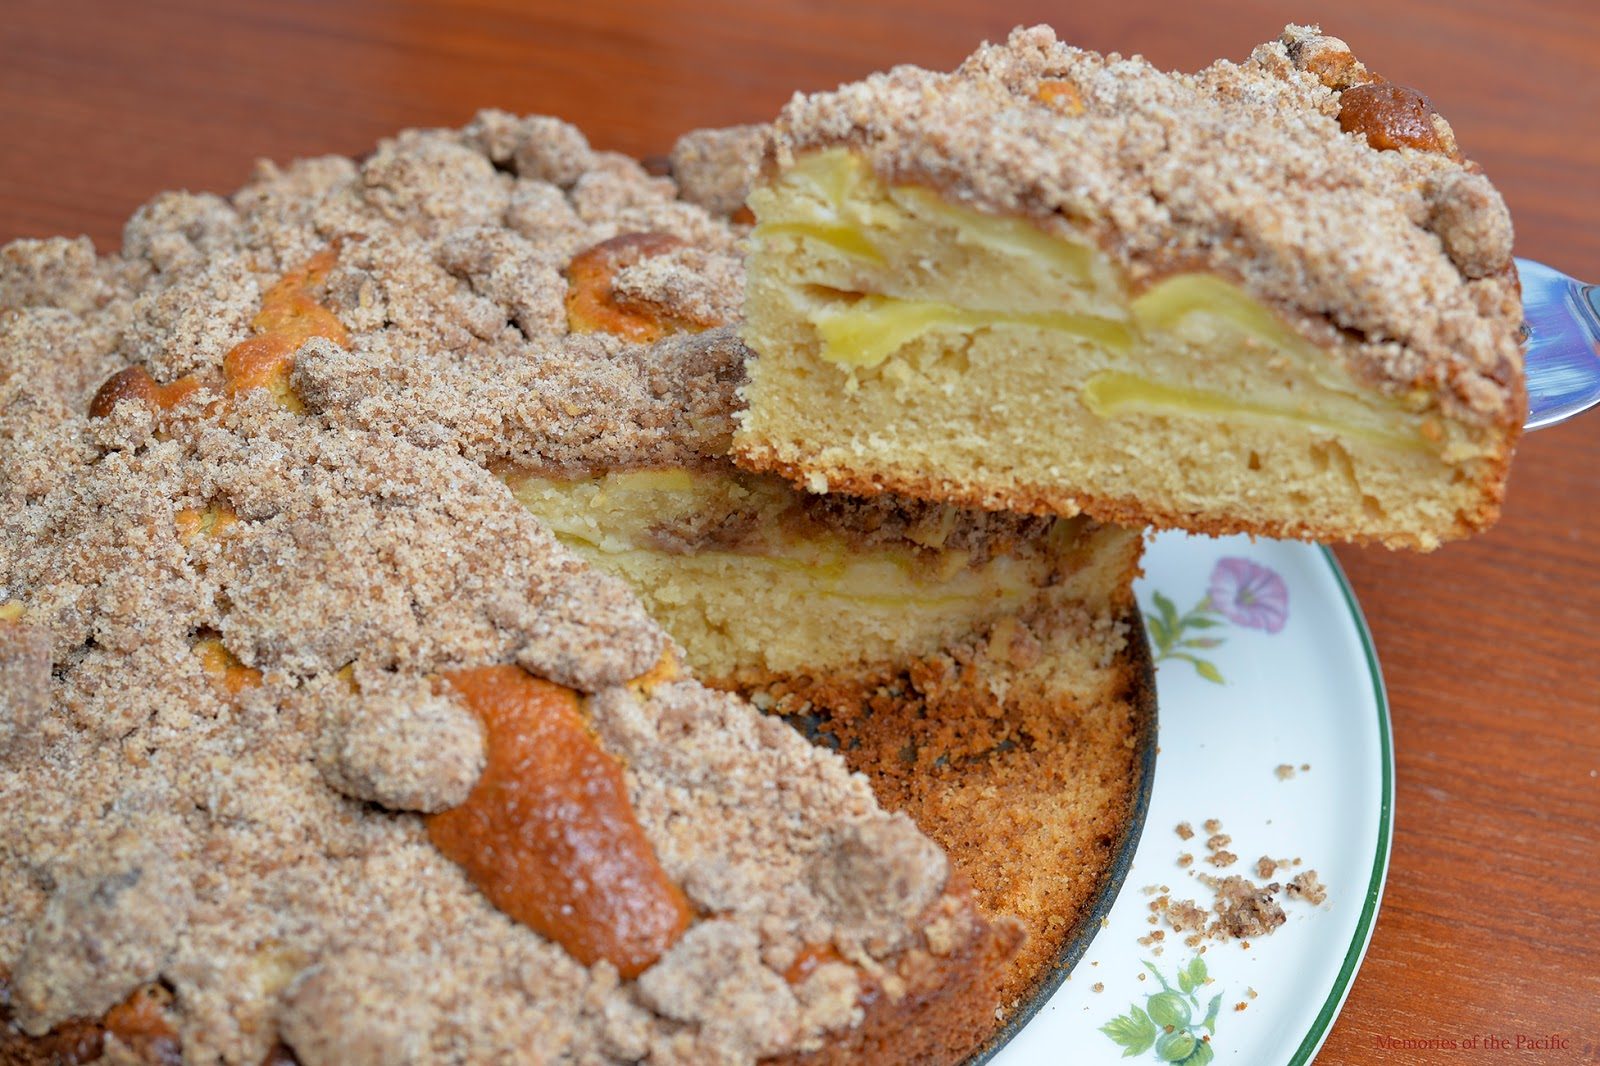 Cinnamon Apple Crumb Cake recipe